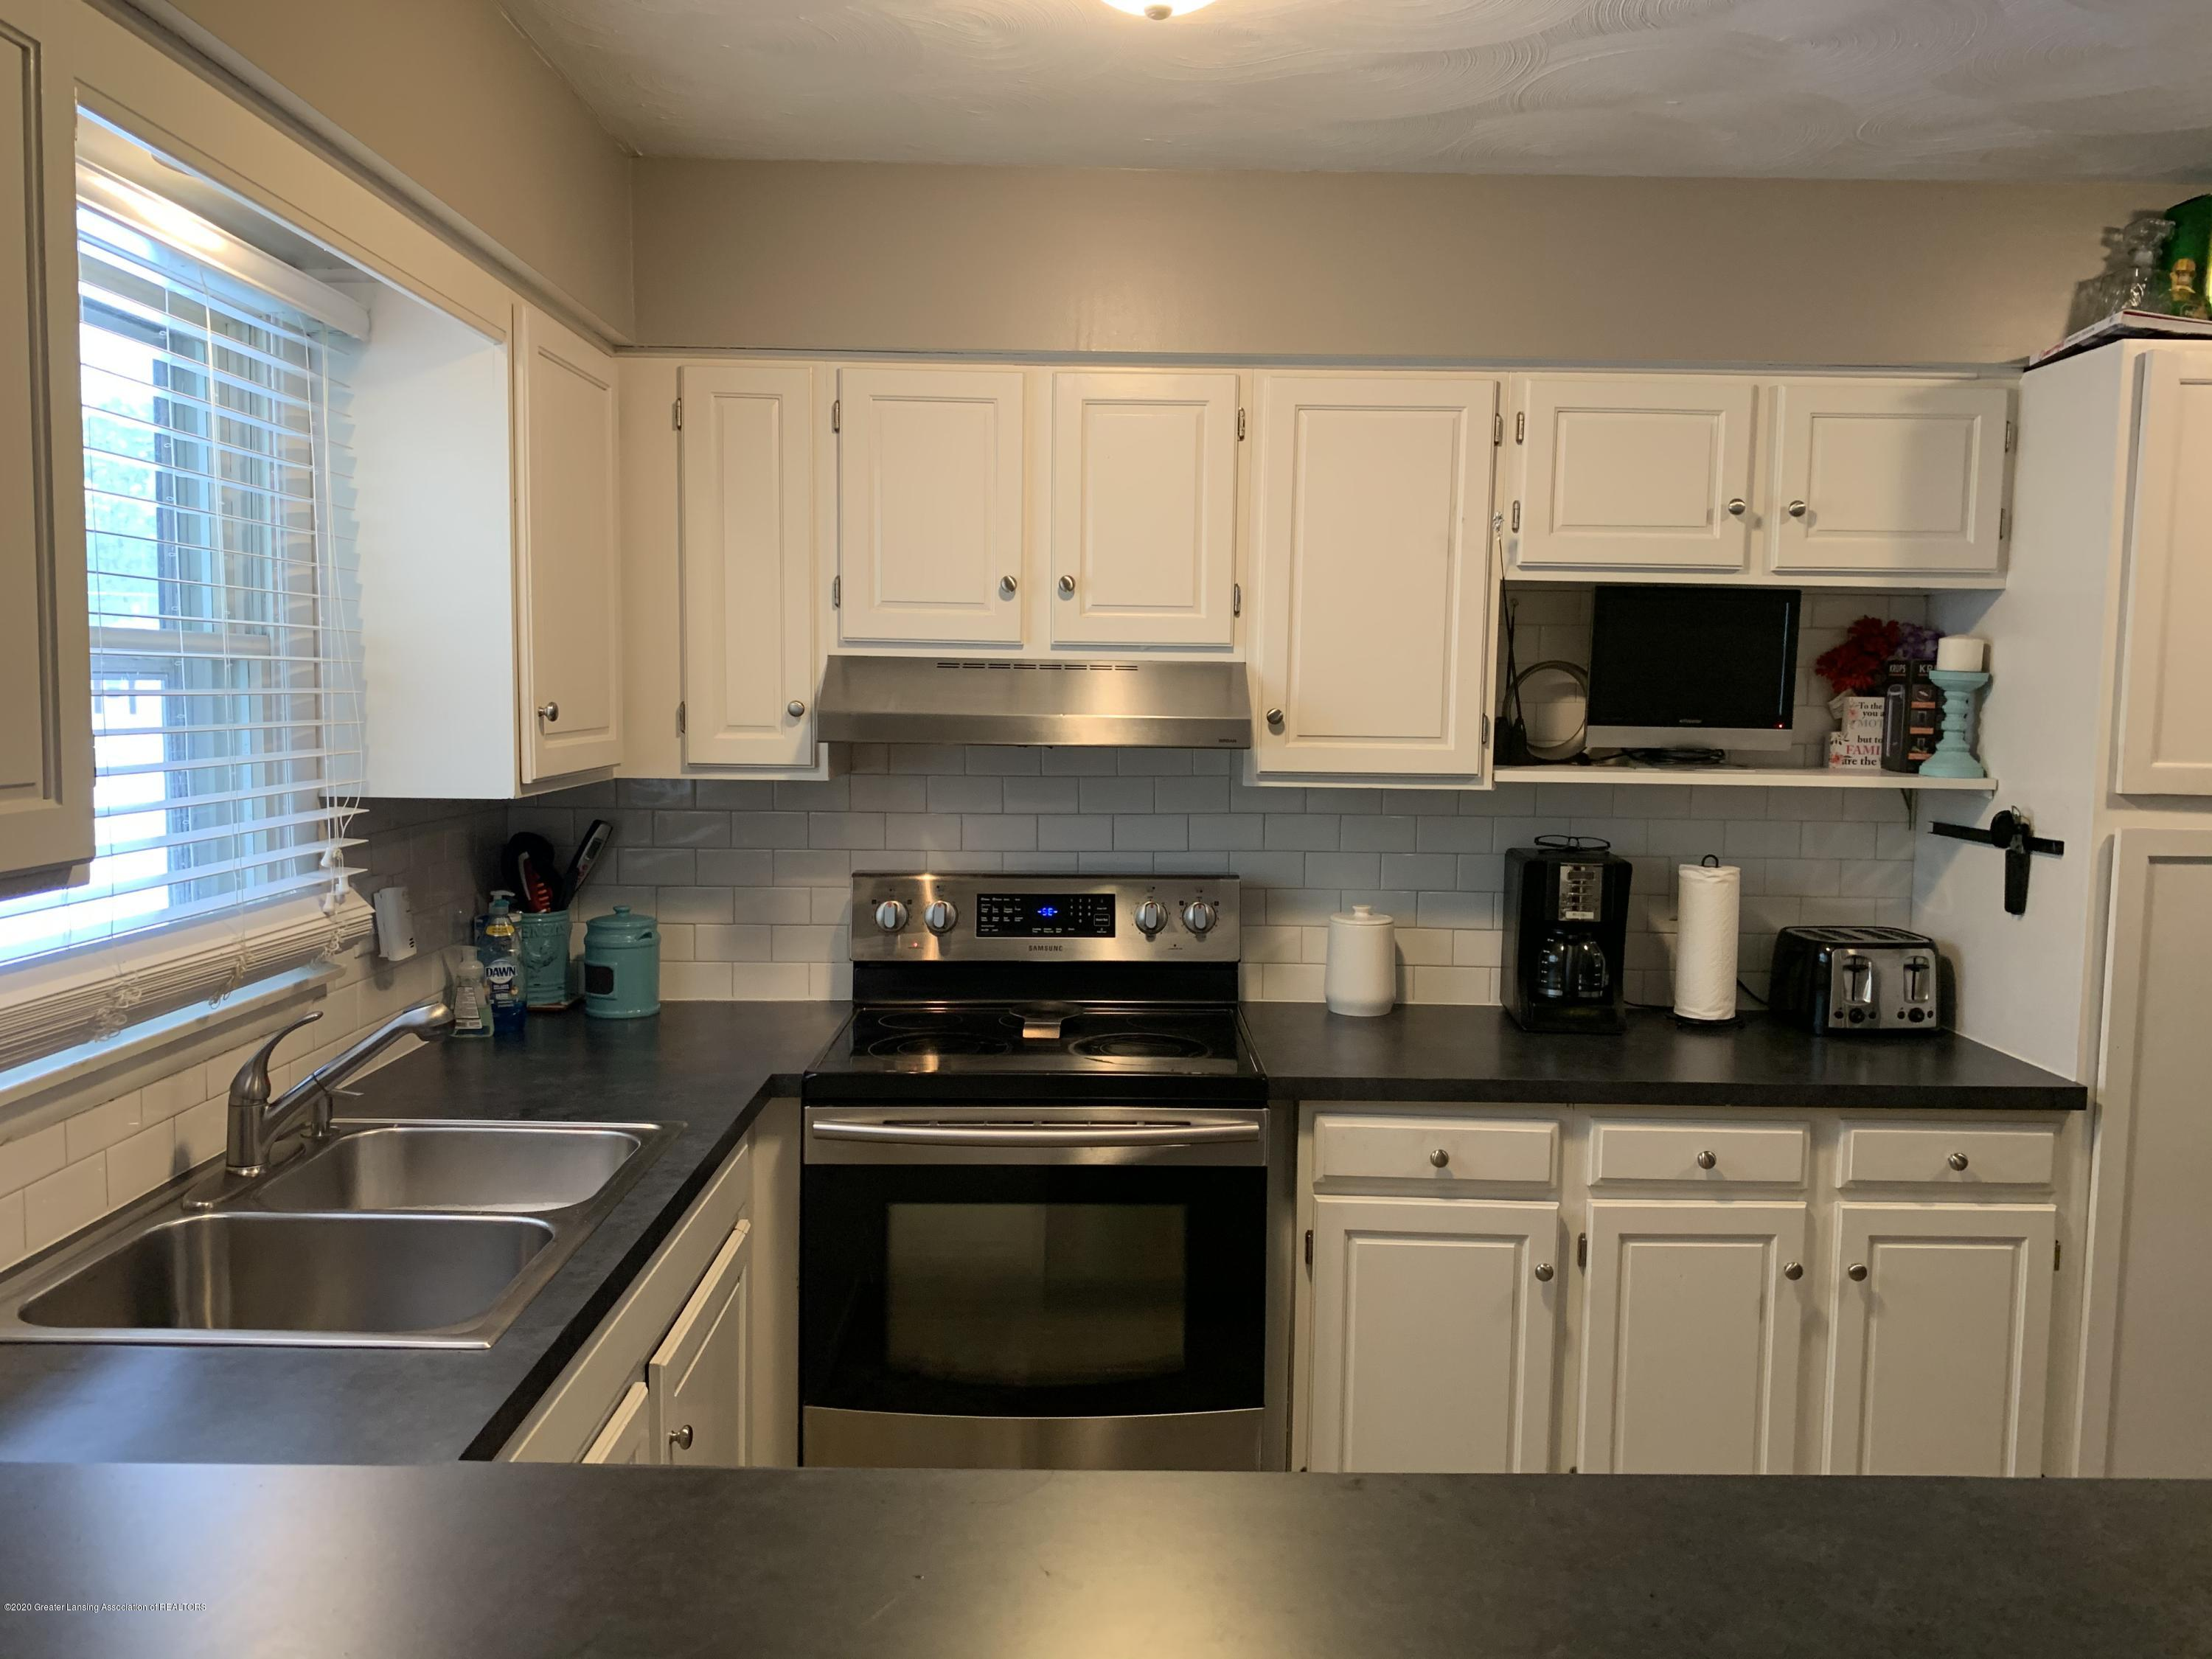 7895 W Herbison Rd - kitchen - 6